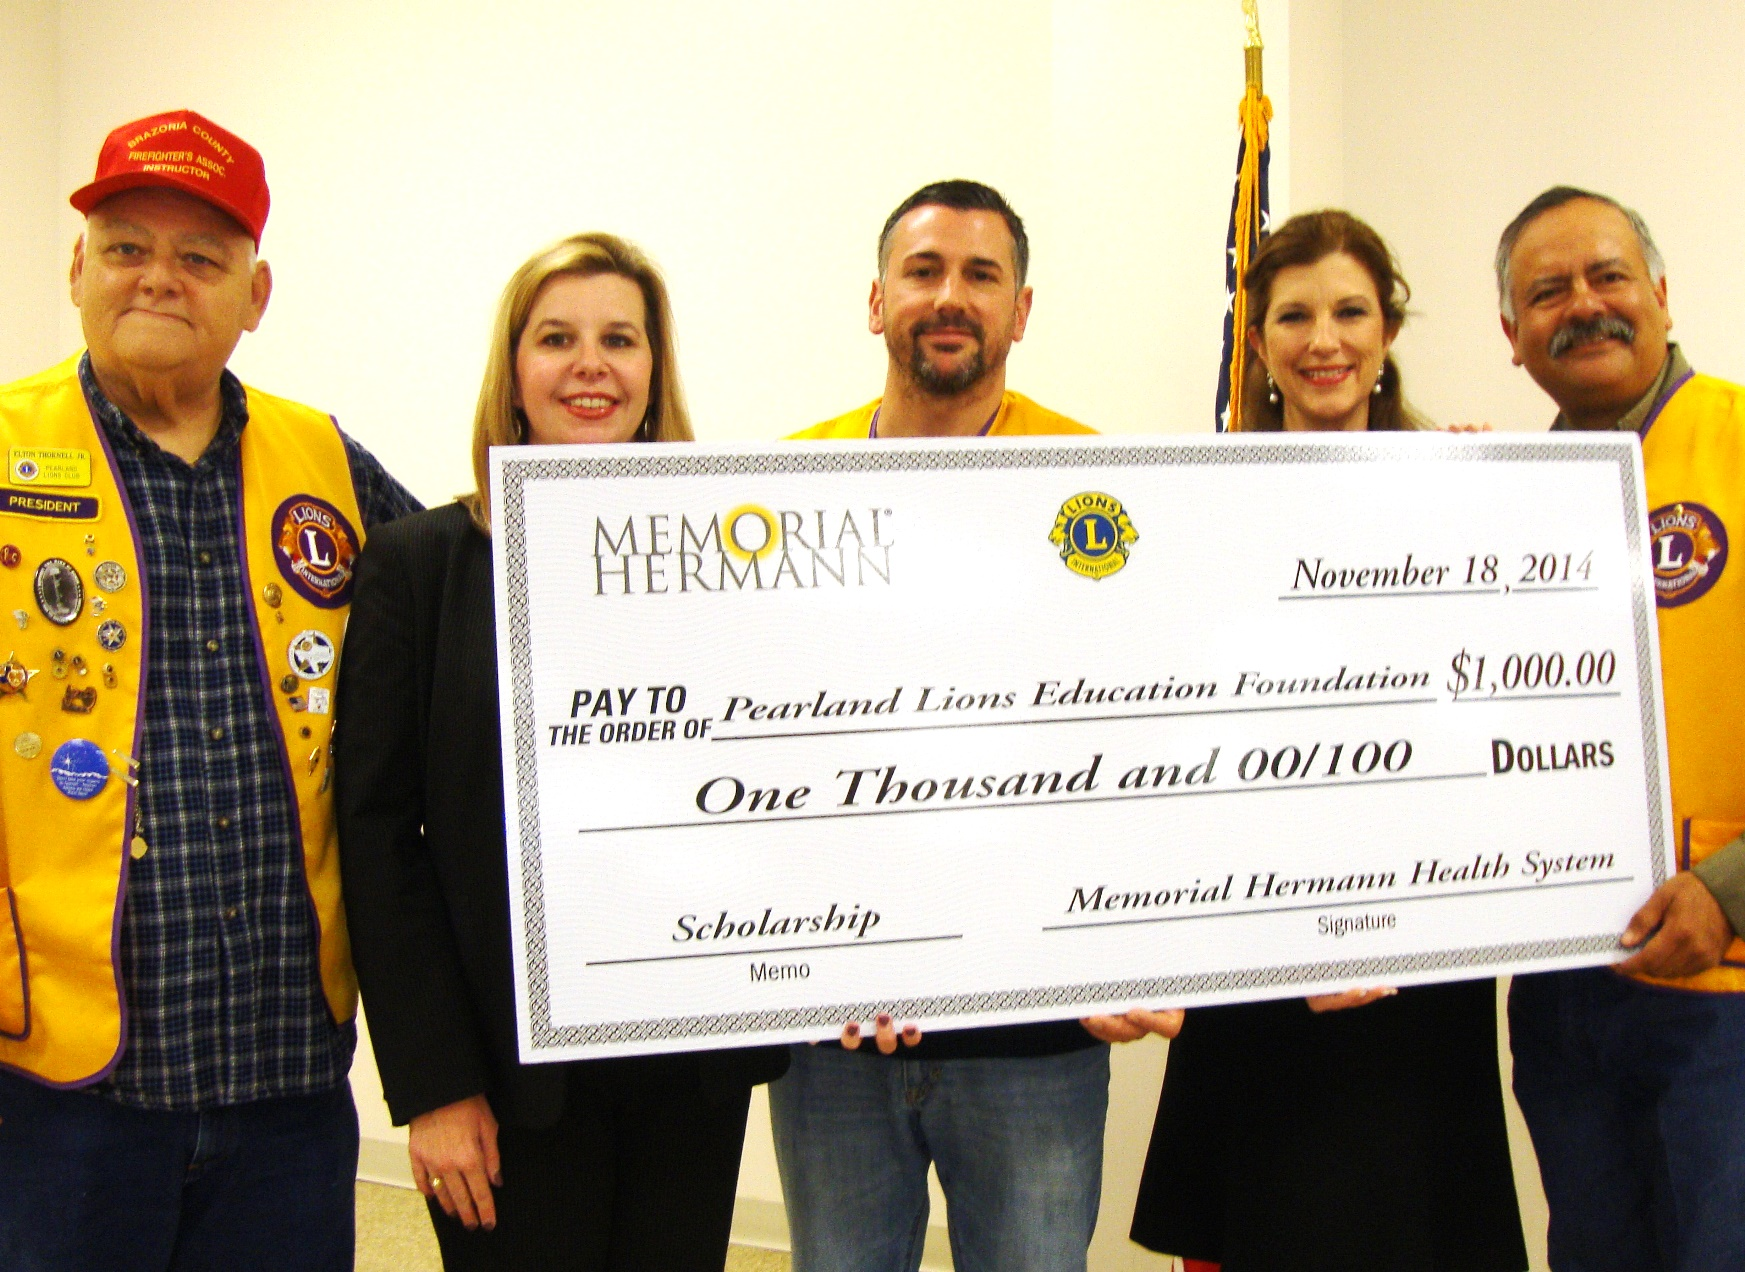 Memorial Hermann Supports Higher Education in Pearland | The